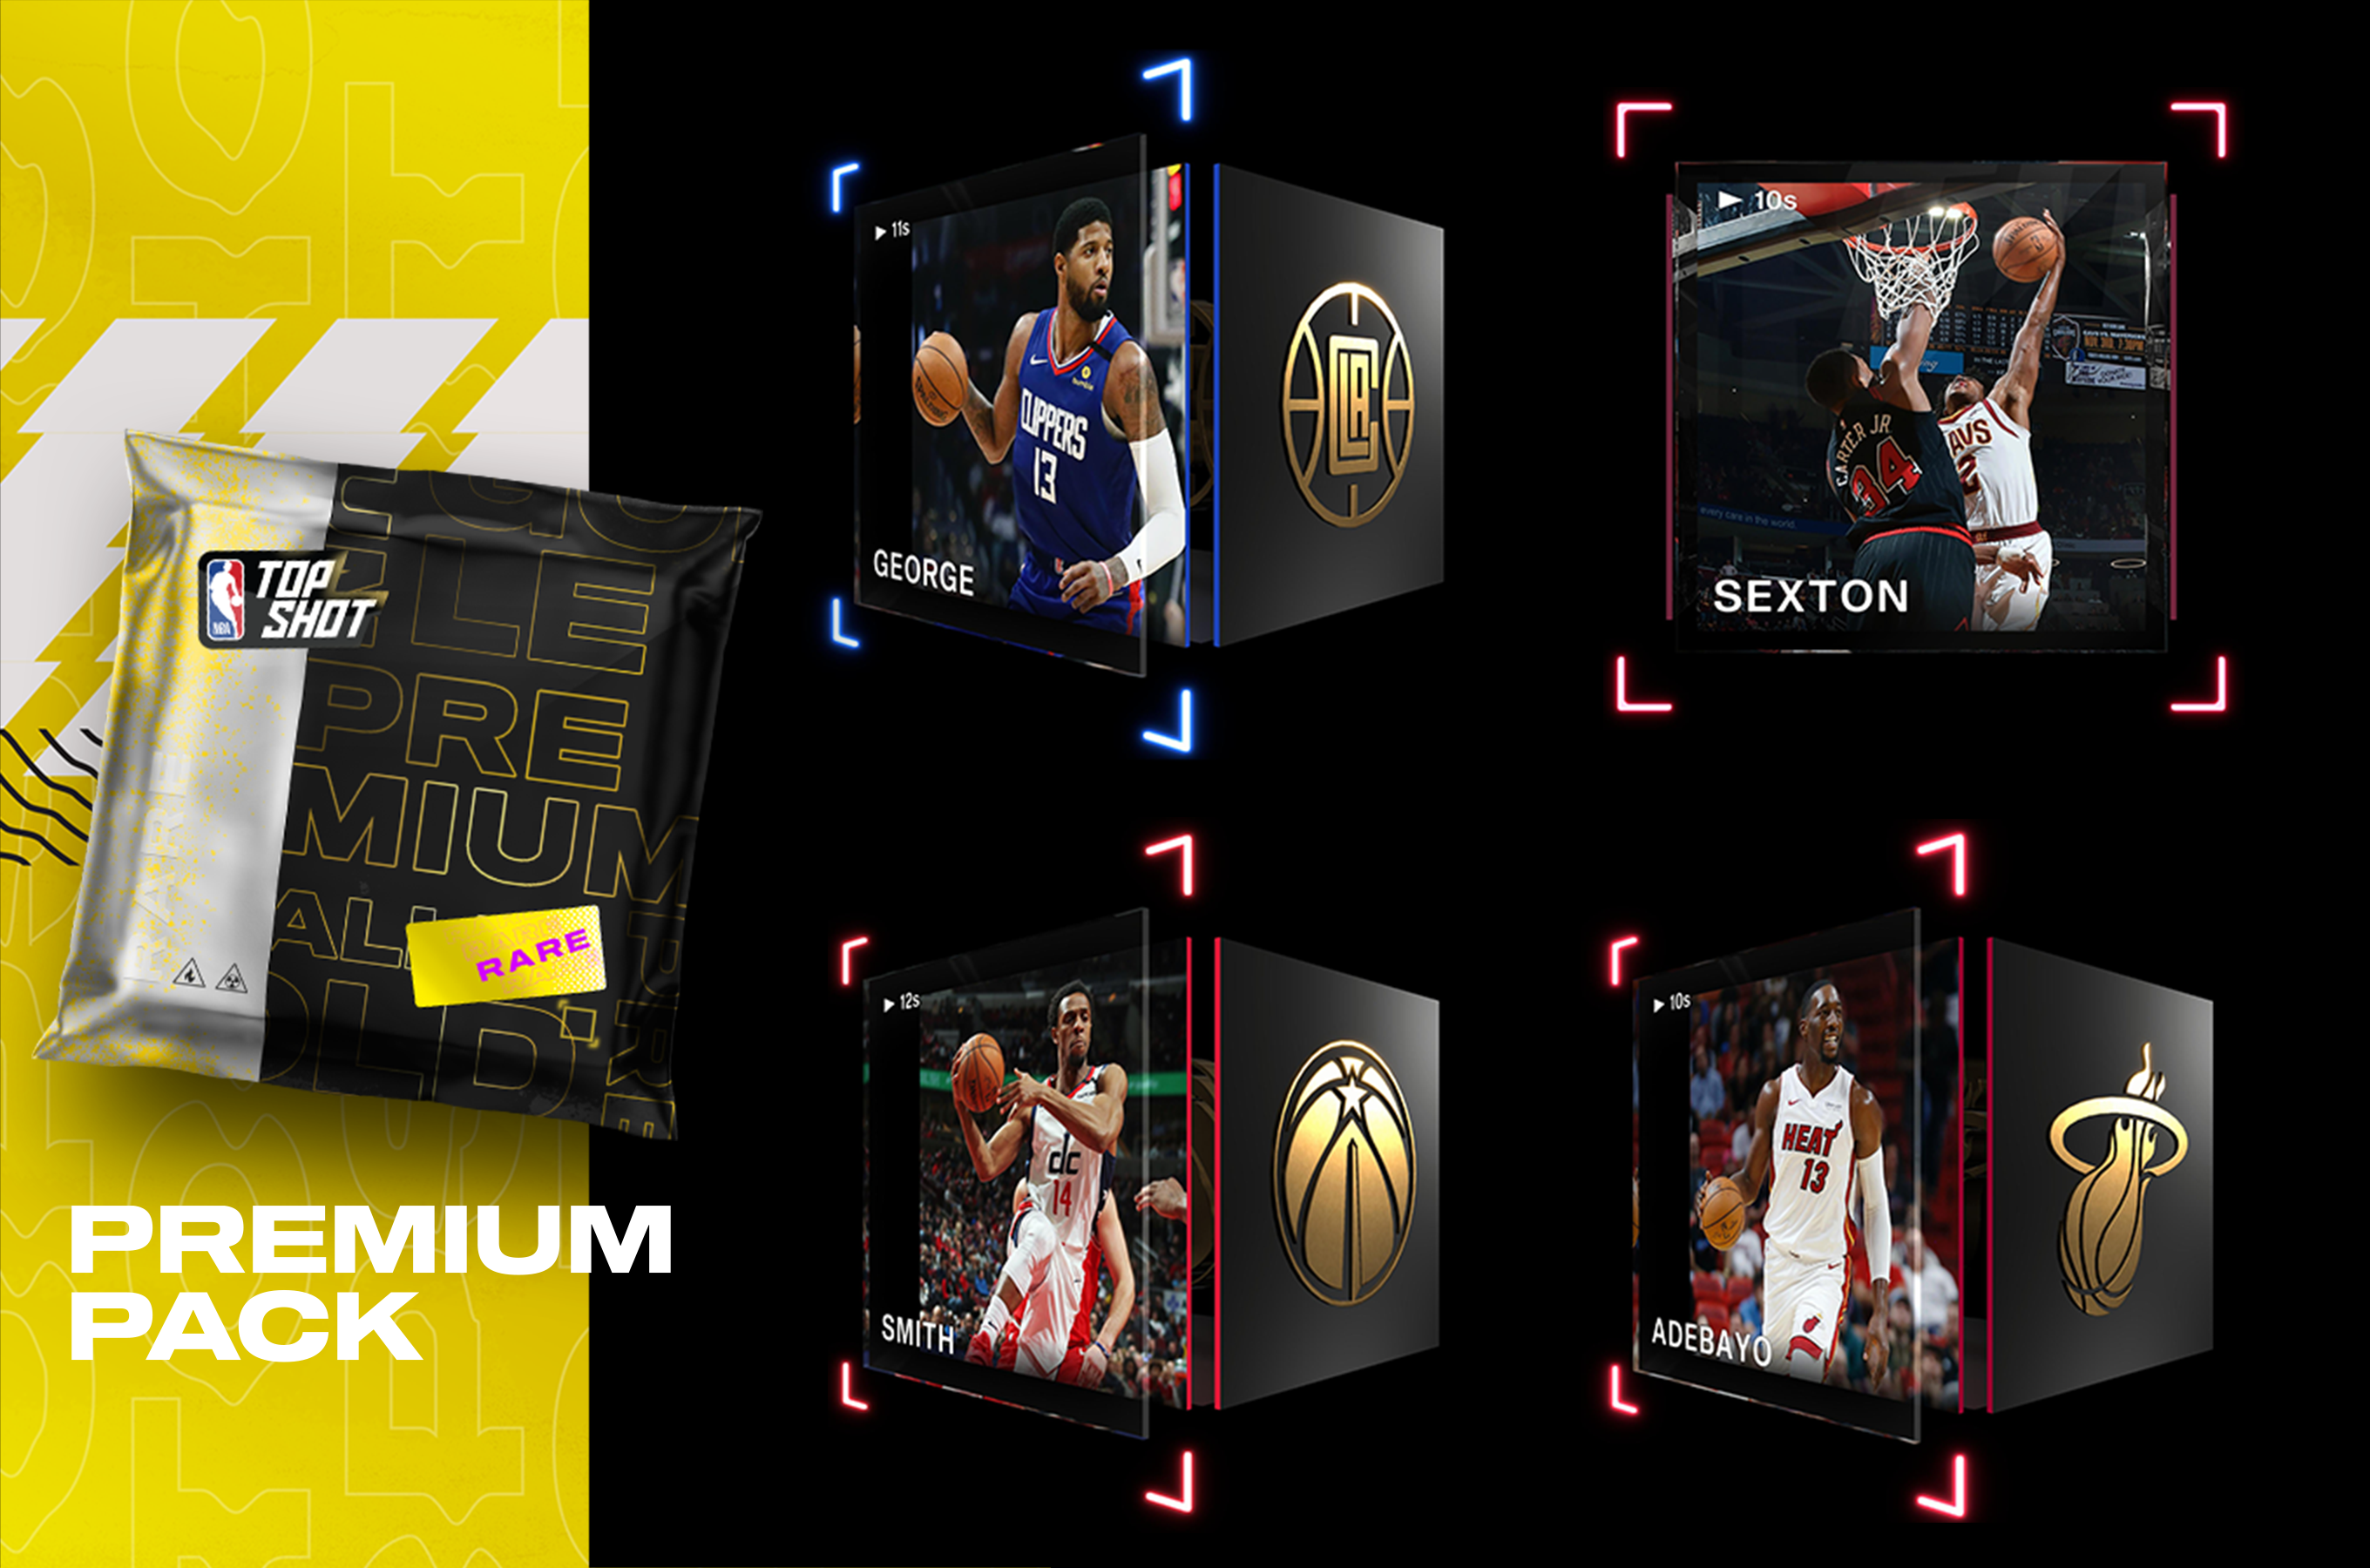 With a trove of All-Stars and some up-and-coming guards, these packs have a little something for every fan to enjoy.